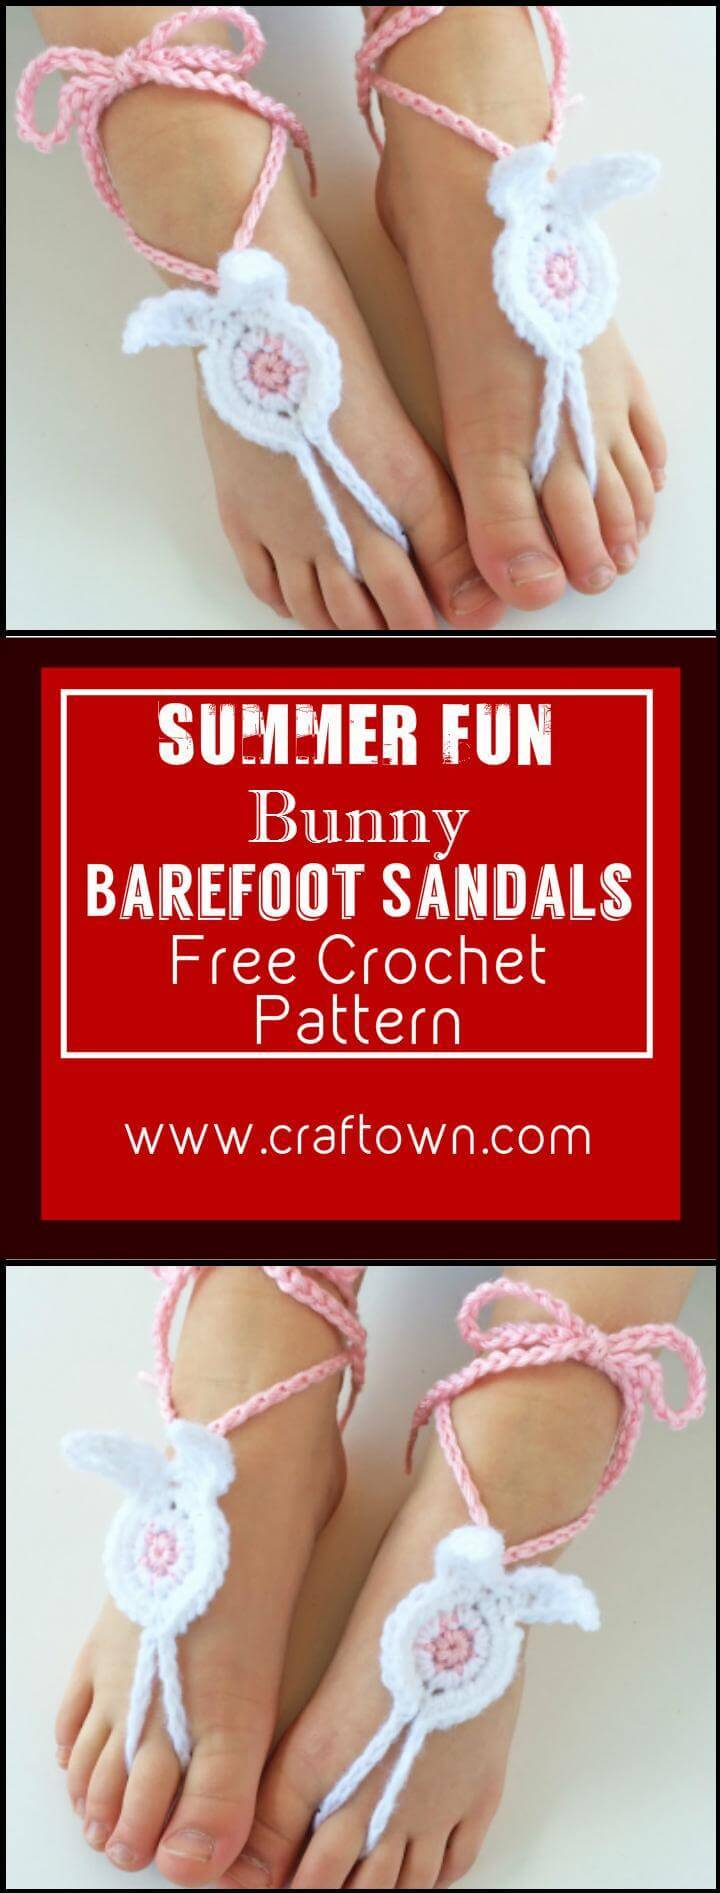 Summer Fun Bunny Barefoot Sandals Free Crochet Pattern